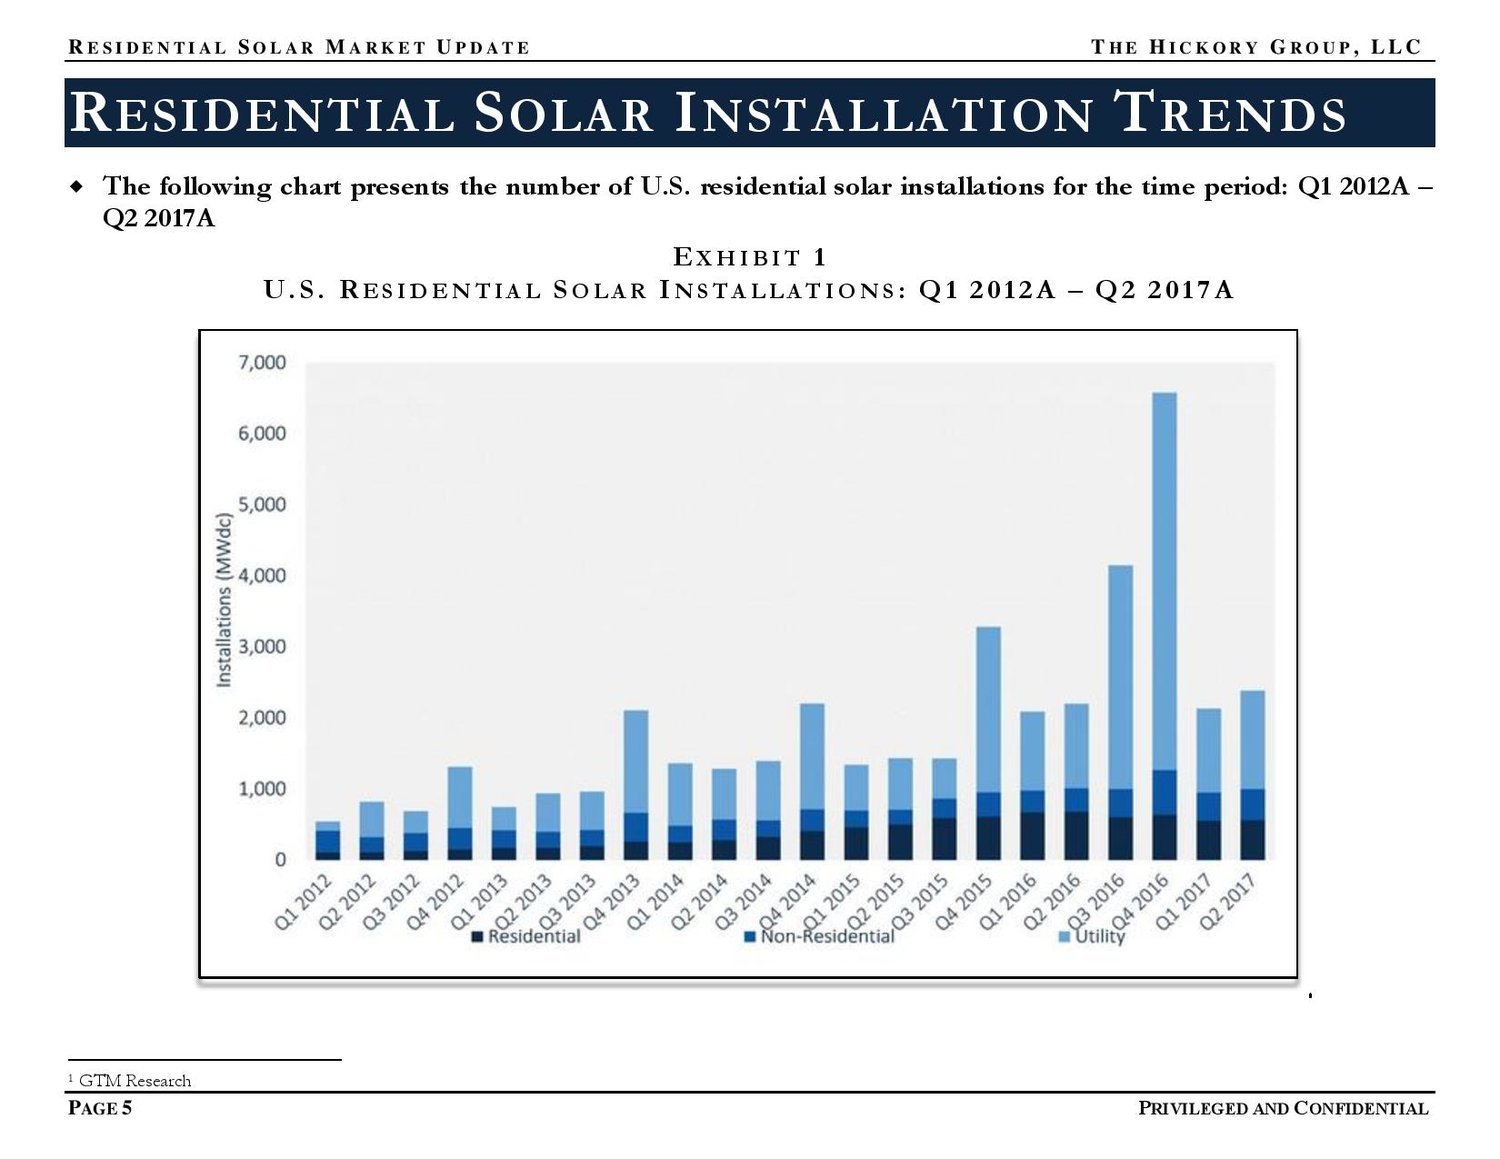 Final+Solar+Update+(Q1+2018)+Privileged+and+Confidential-page-005.jpg